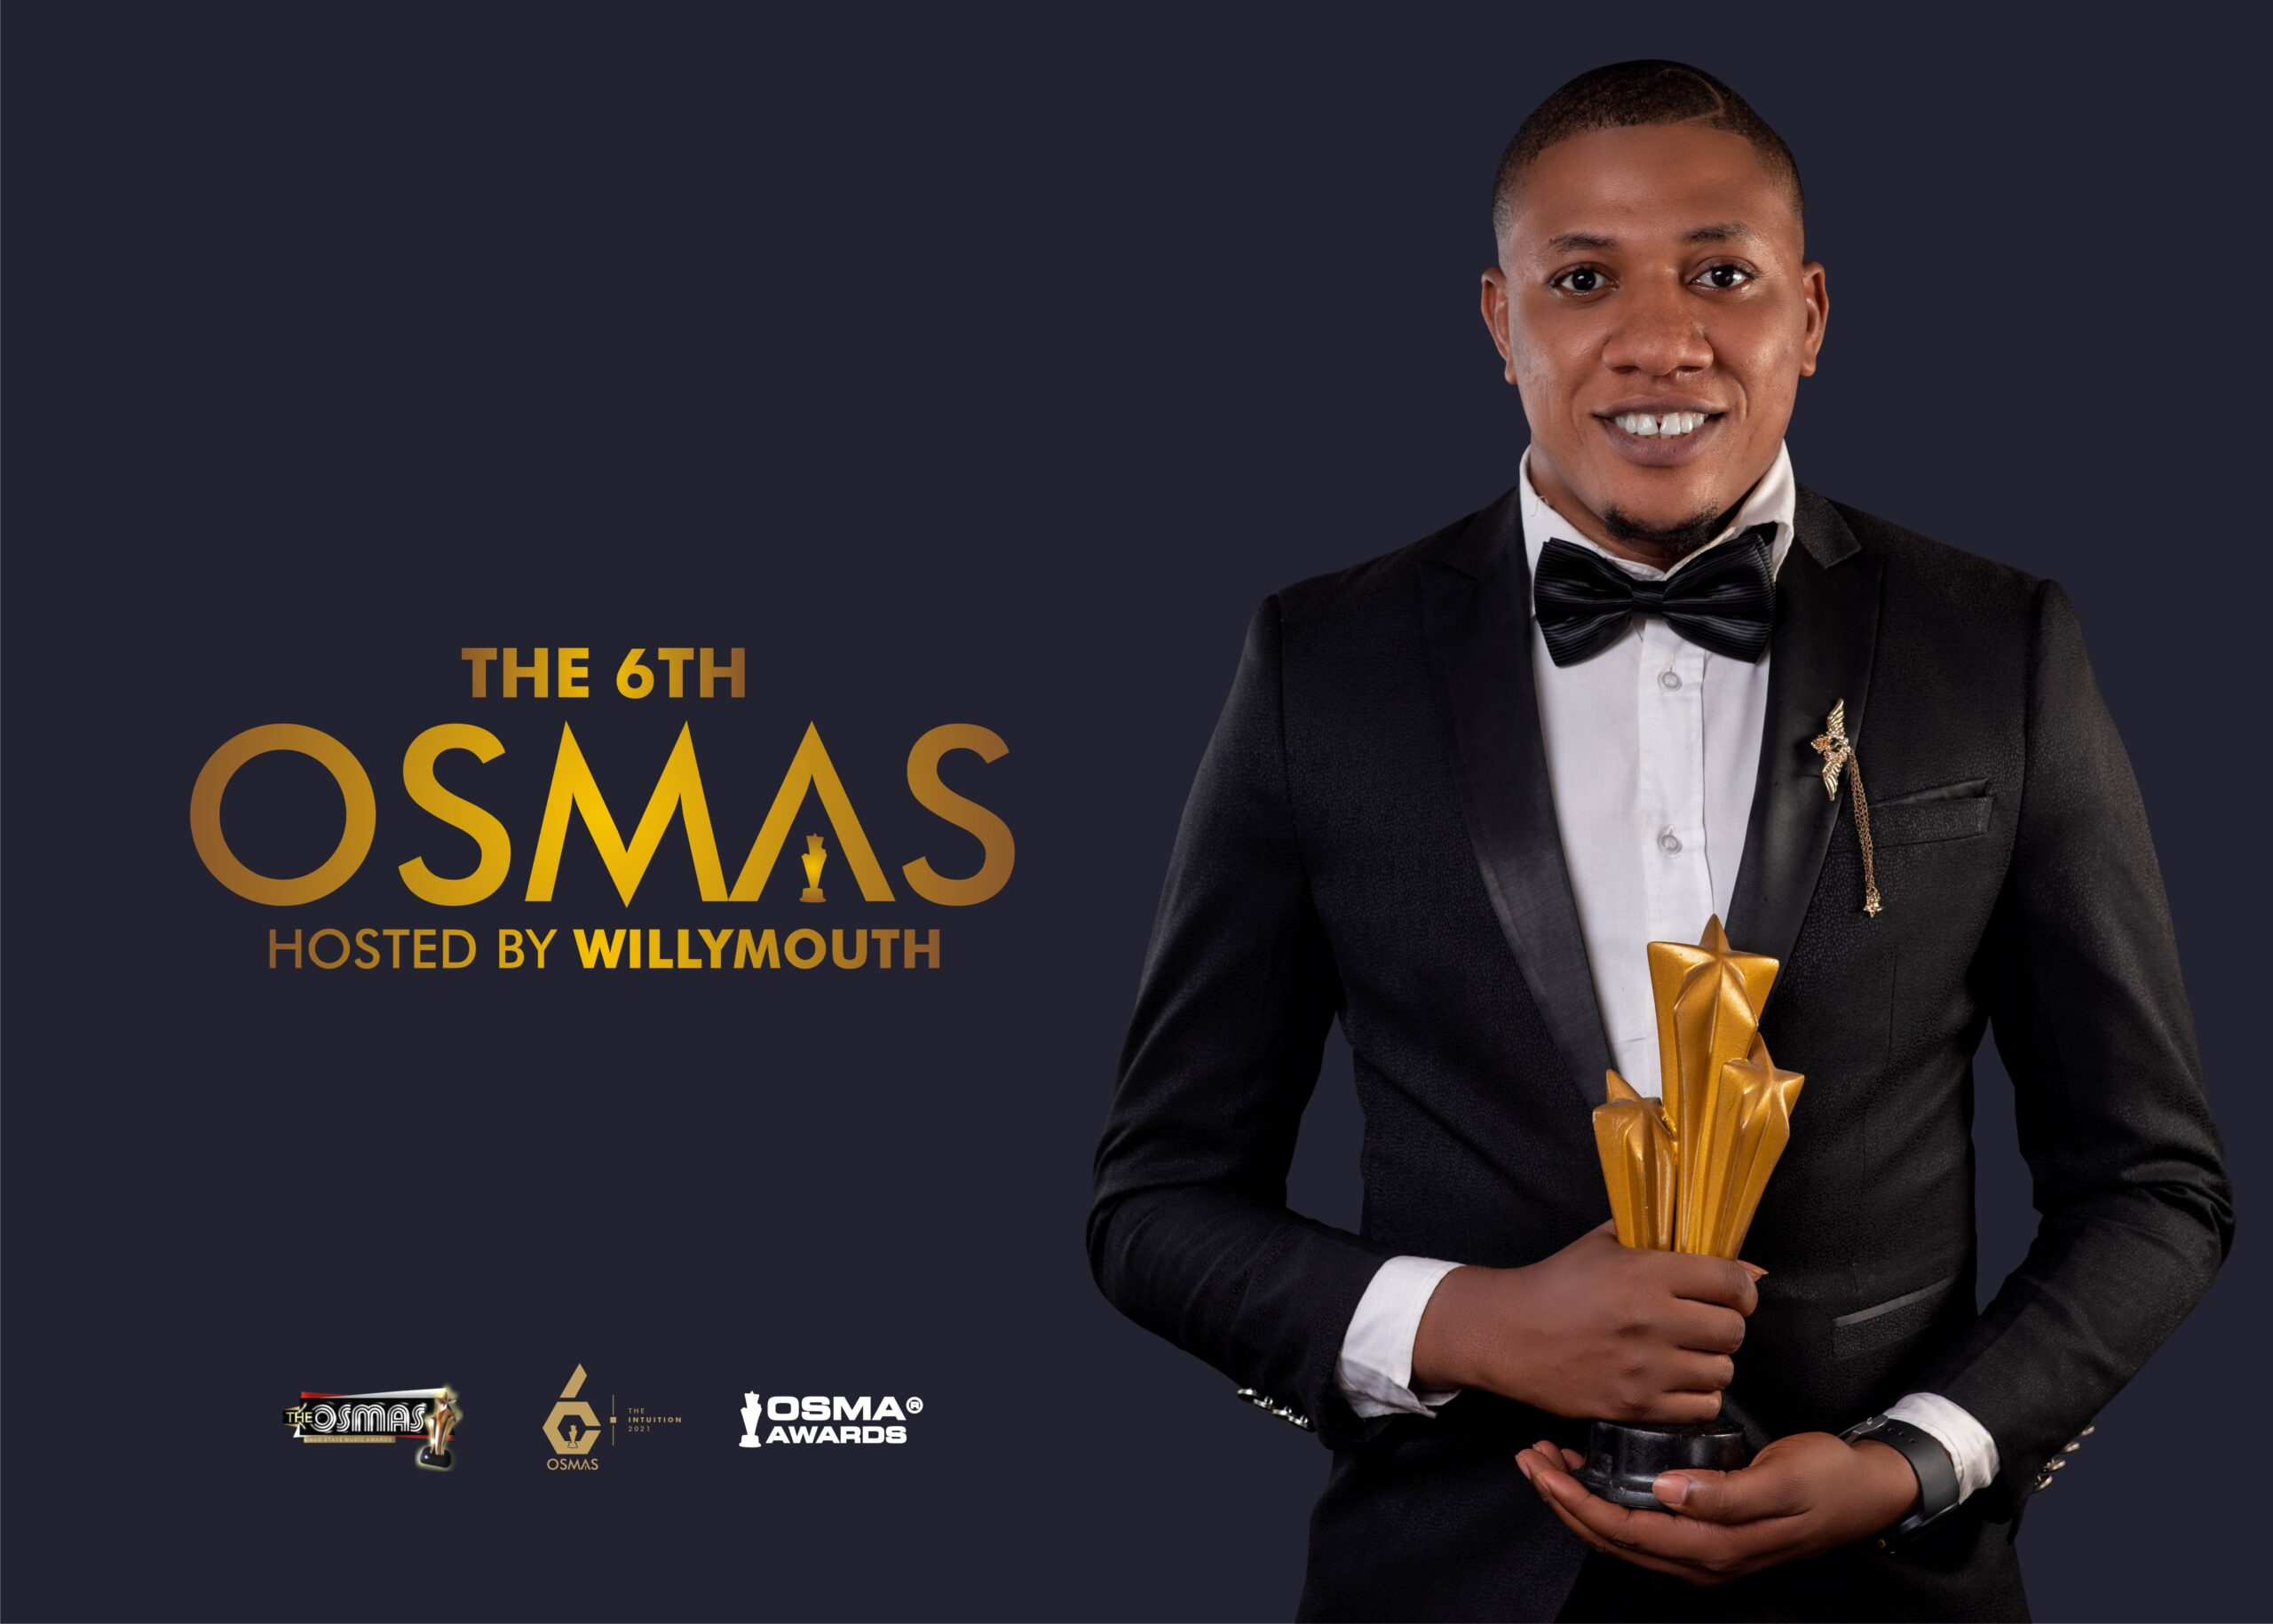 Willymouth will Host The 6th OSMAs